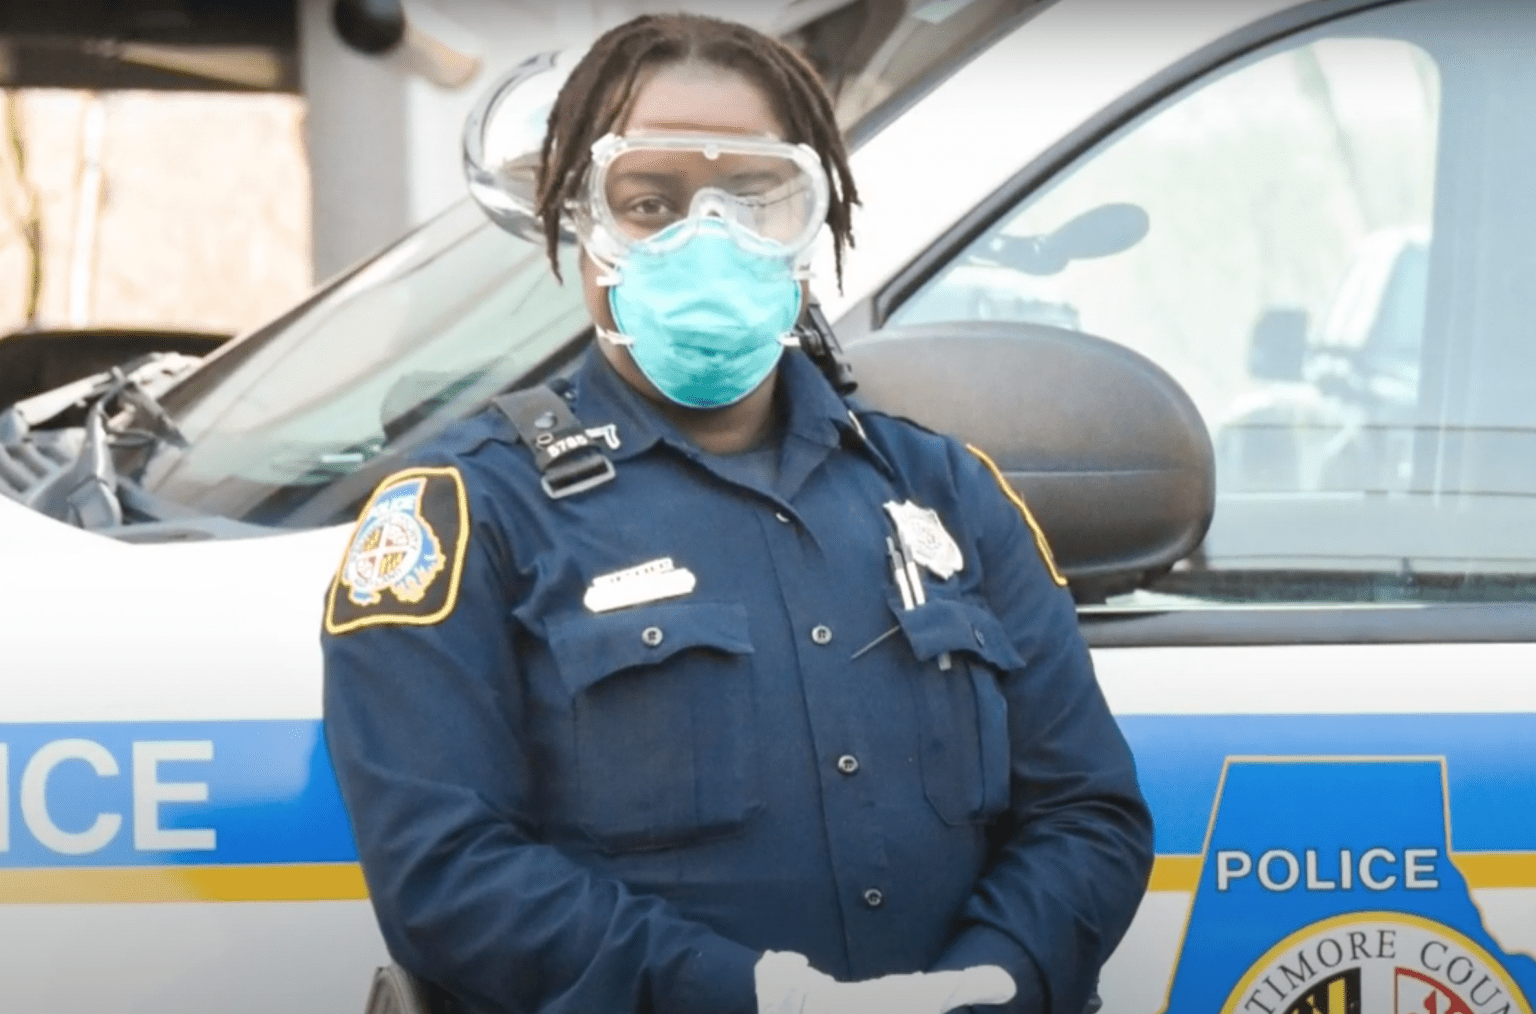 Should first responders be receiving hazard pay for working during this crisis?